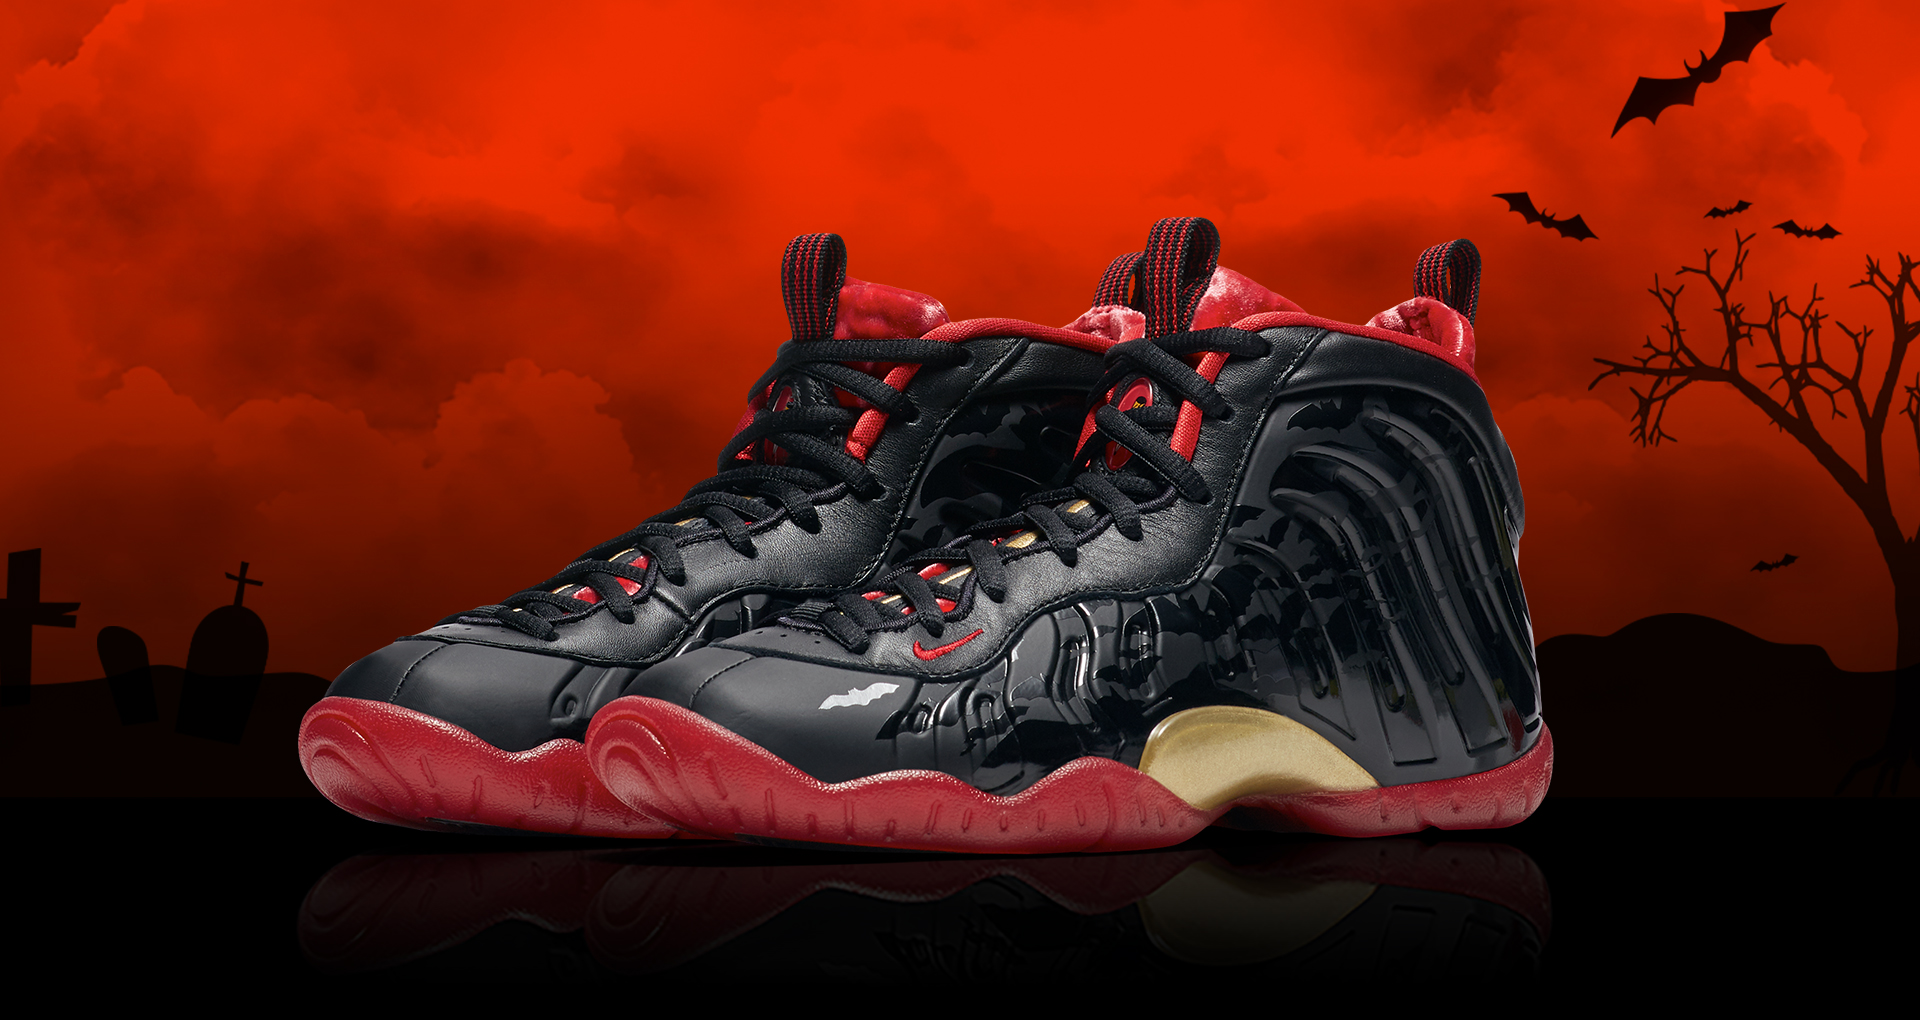 best loved d9972 25fe9 Nike Little Posite One Color  Black University Red-Metallic Gold Style  Code  846077-003. Release Date  10 13 2017. Price   180.00